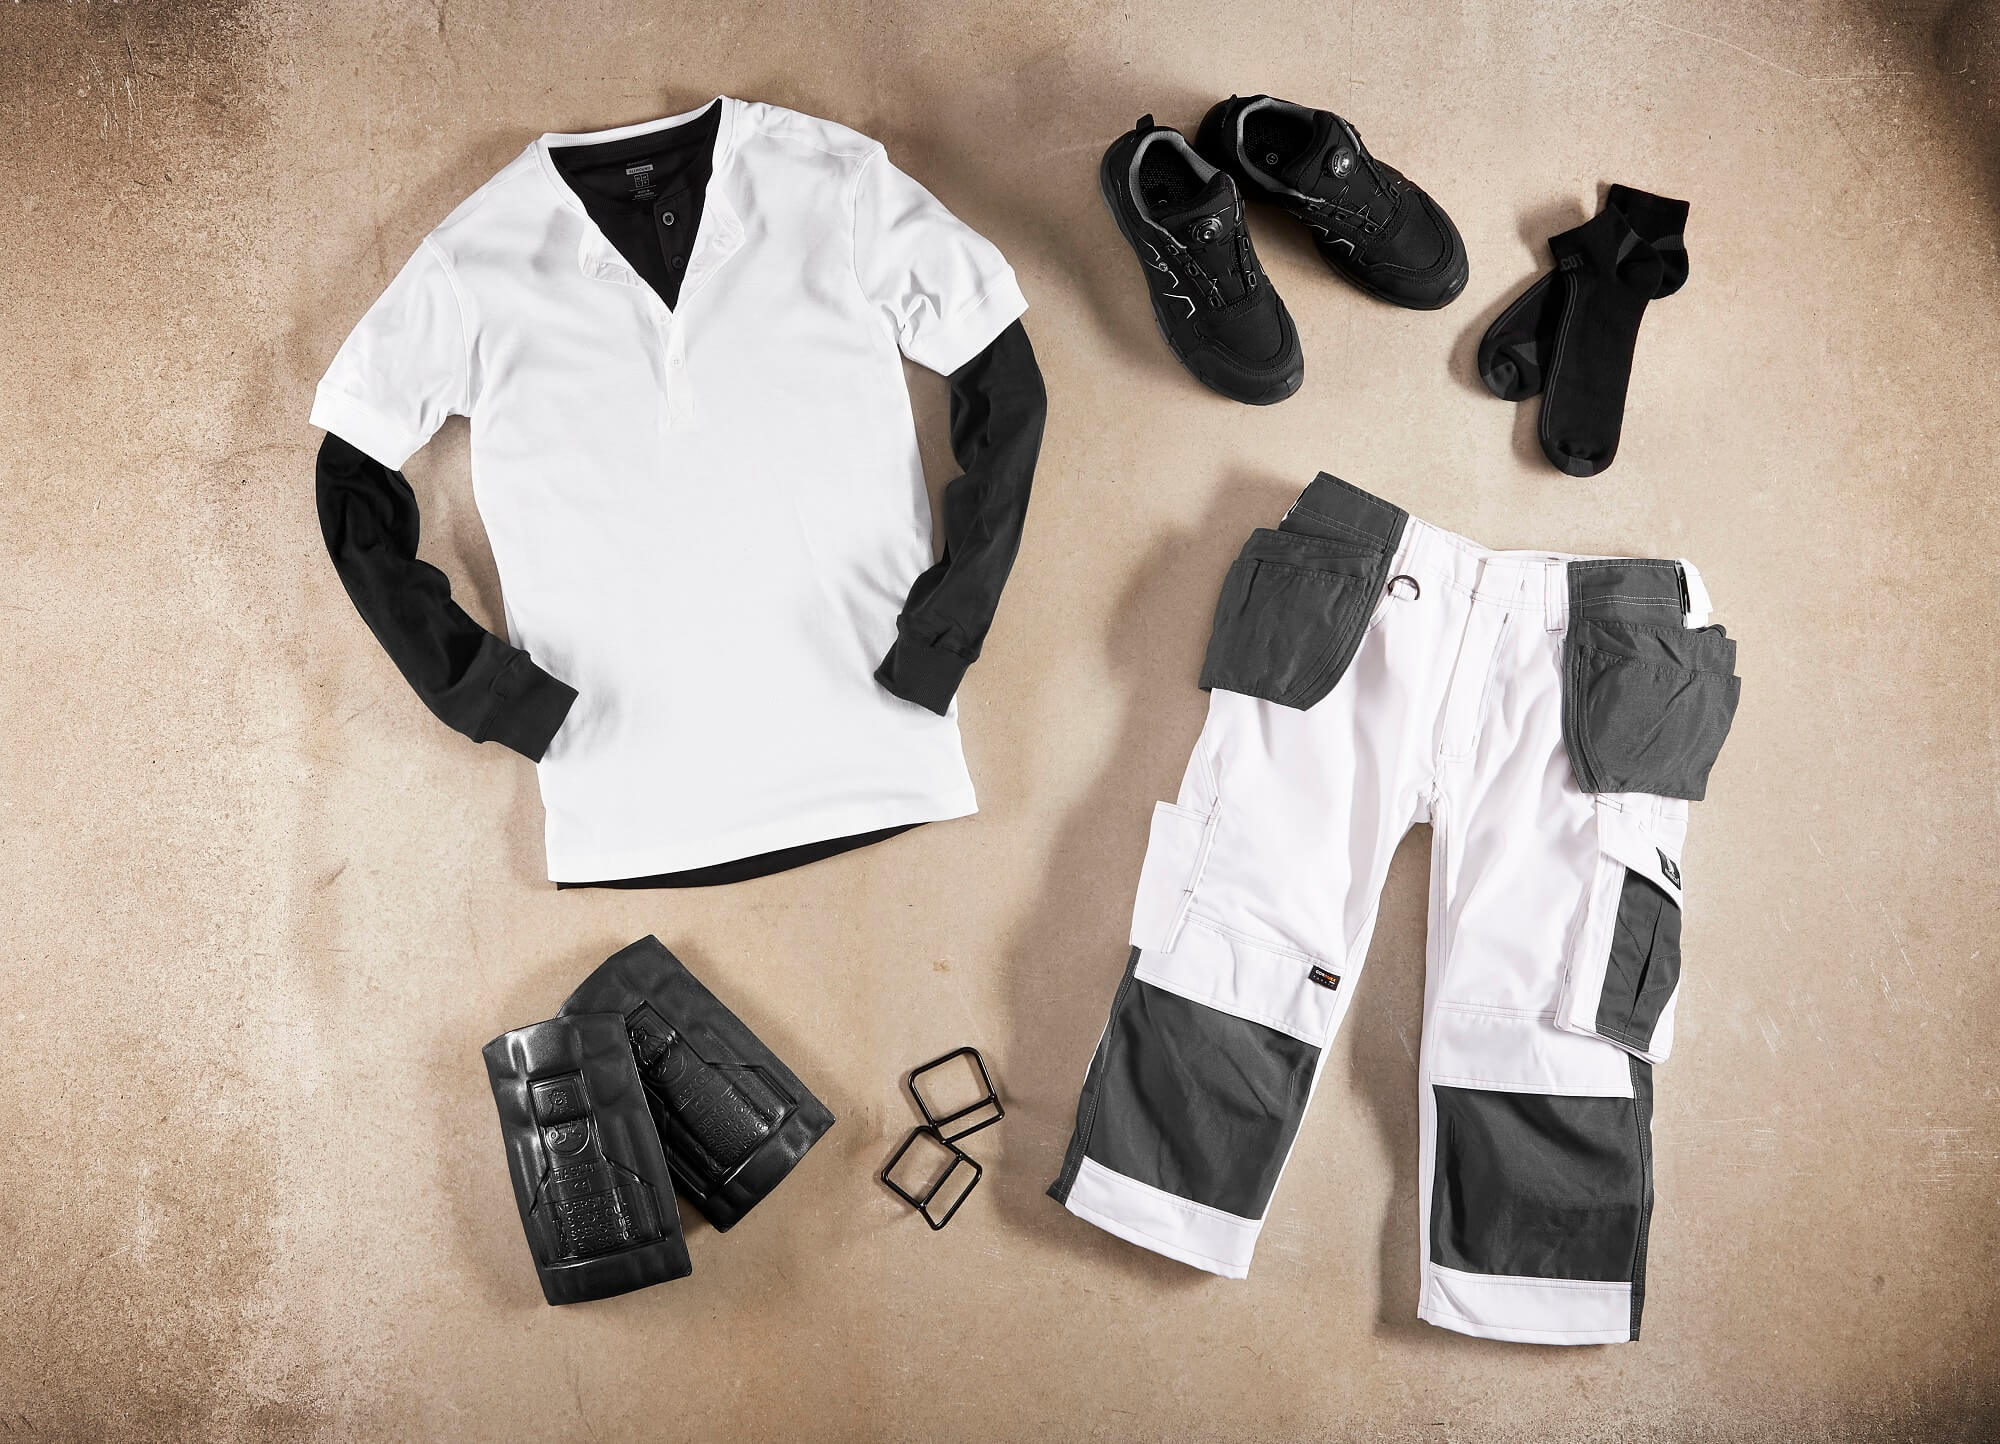 White - T-shirt, ¾ Work Trousers & Accessories - Collage